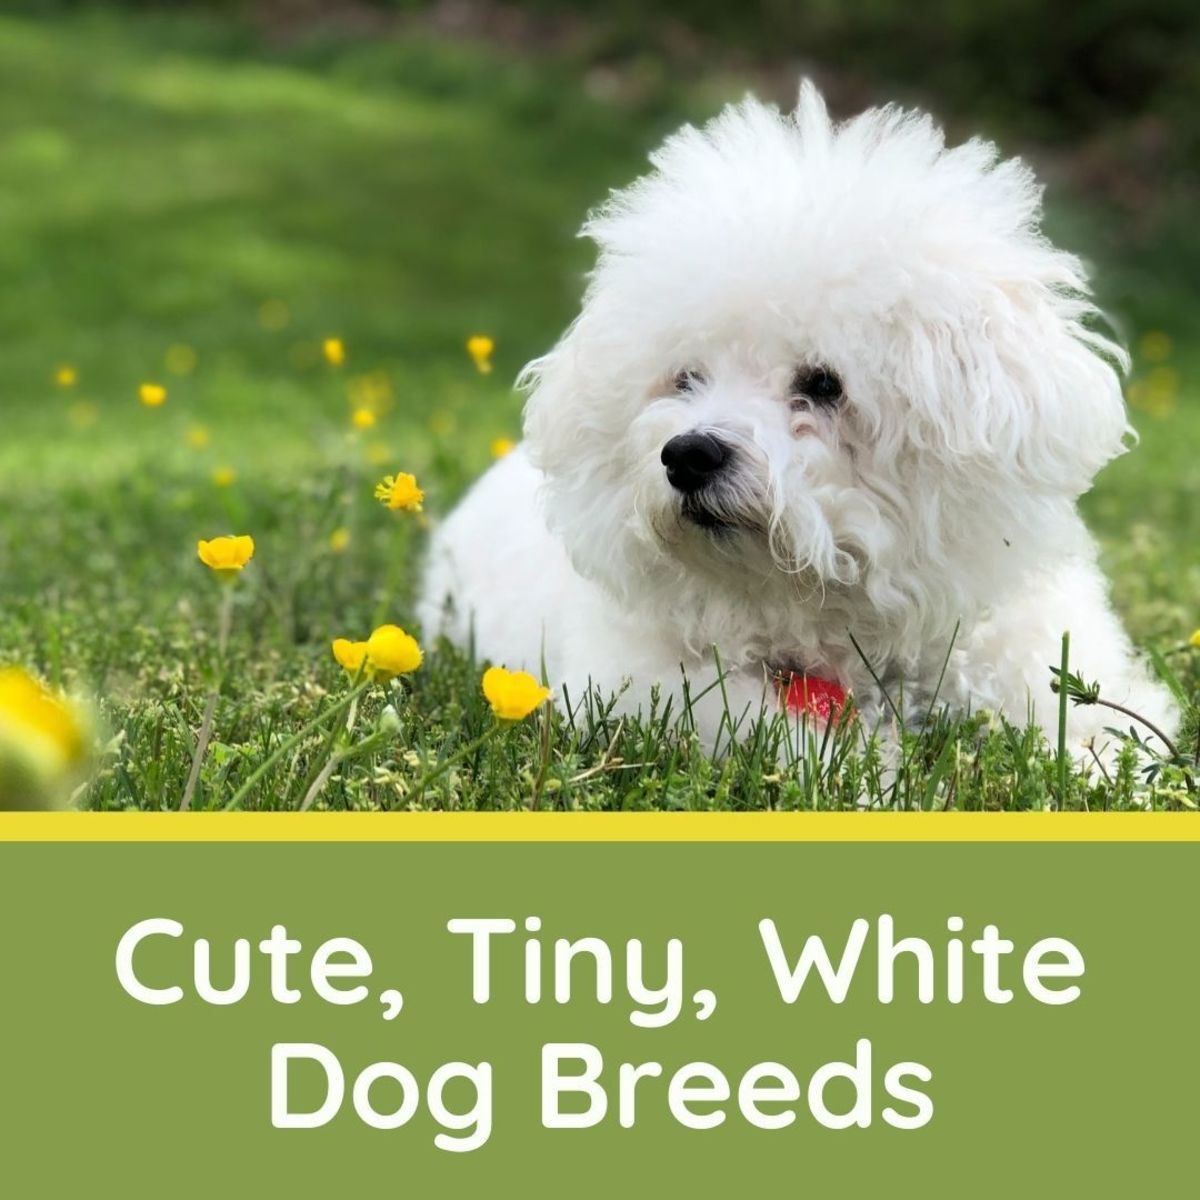 5 Really Cute, Small, White Dog Breeds